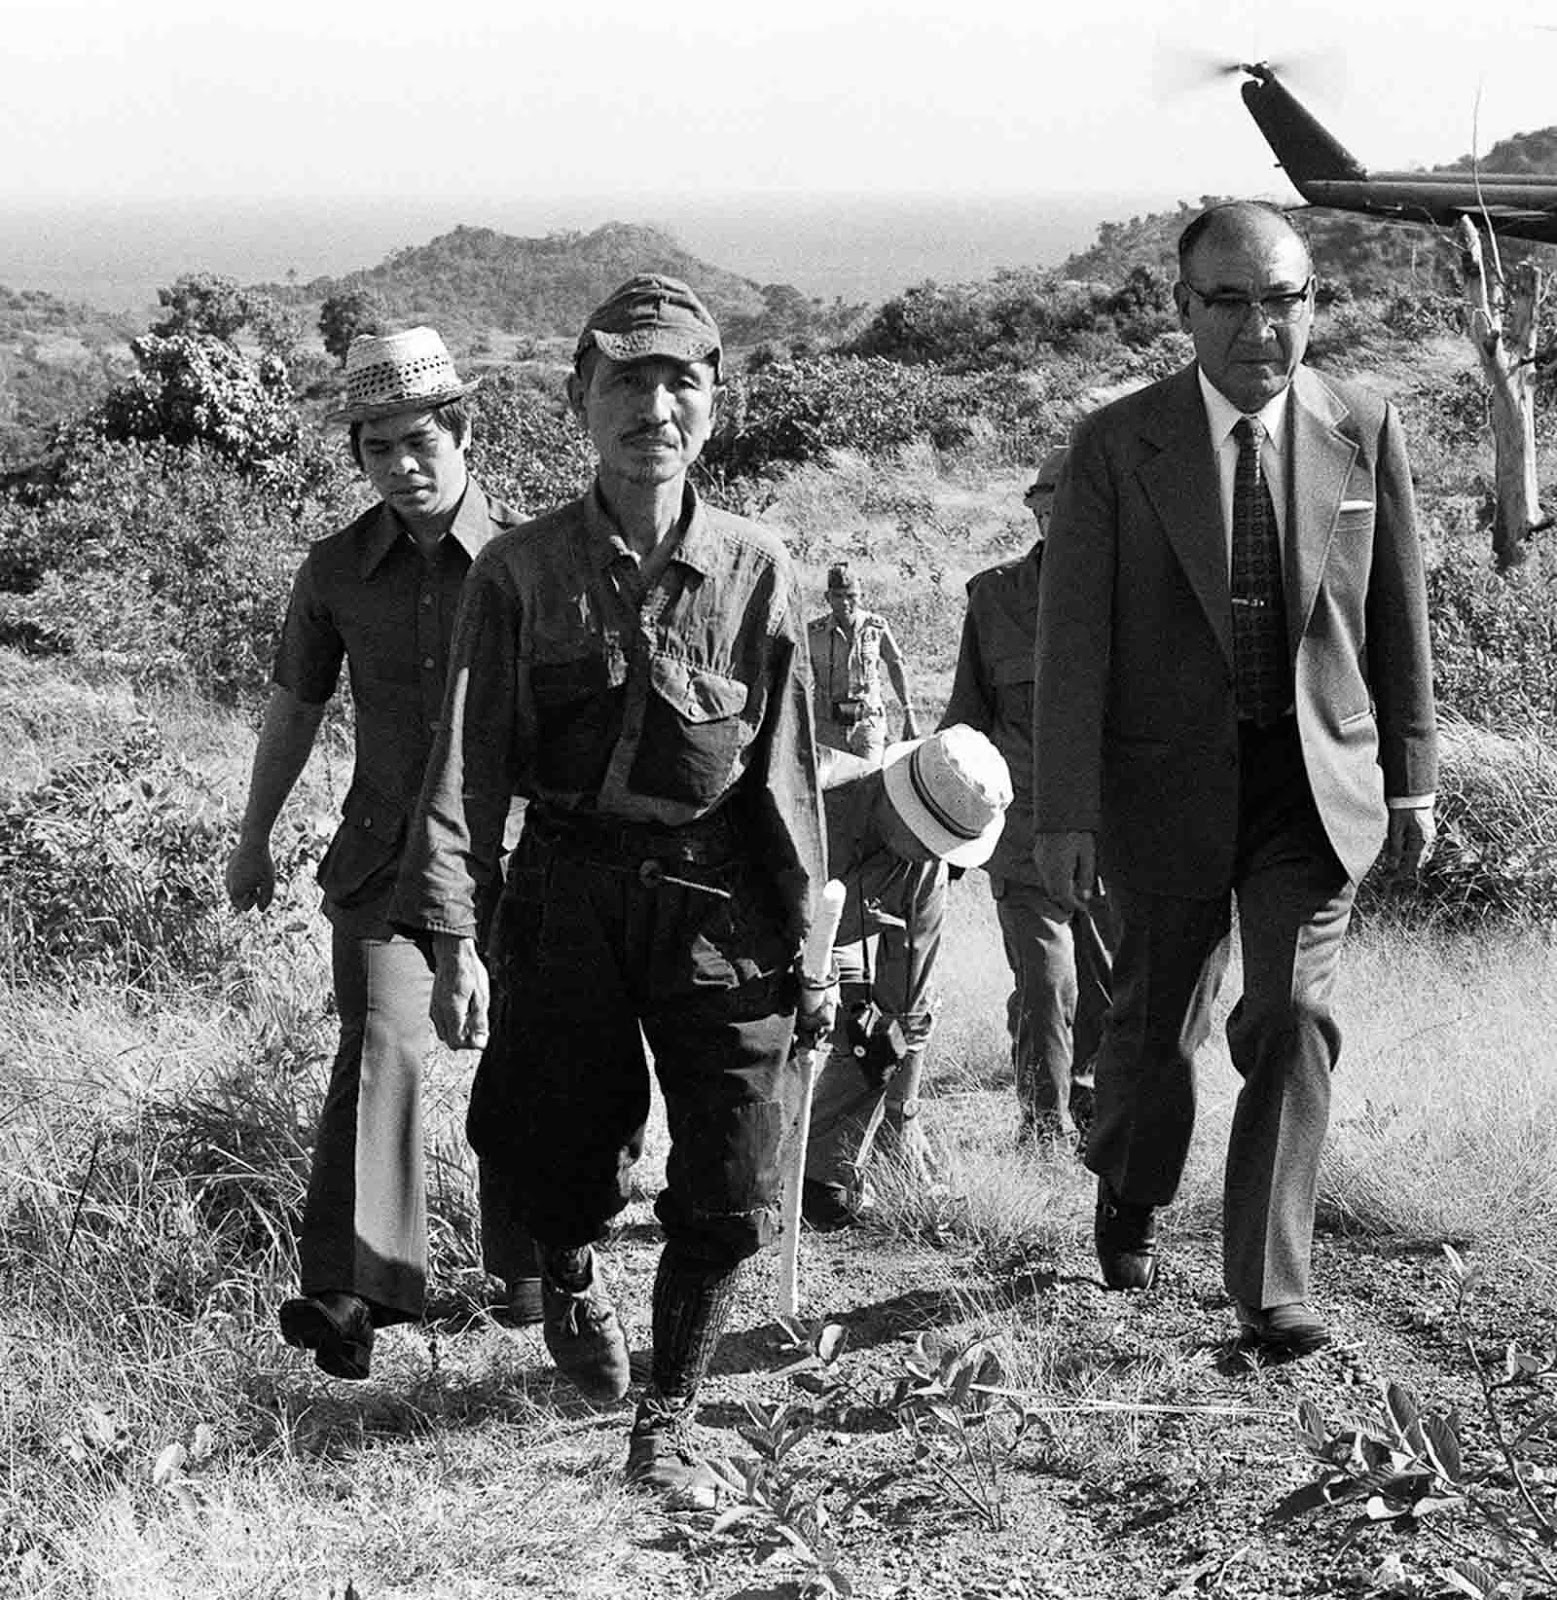 Taniguchi flew to Lubang, and on March 9, 1974, he formally relieved Onoda of his duties, nearly 29 years after the end of the war